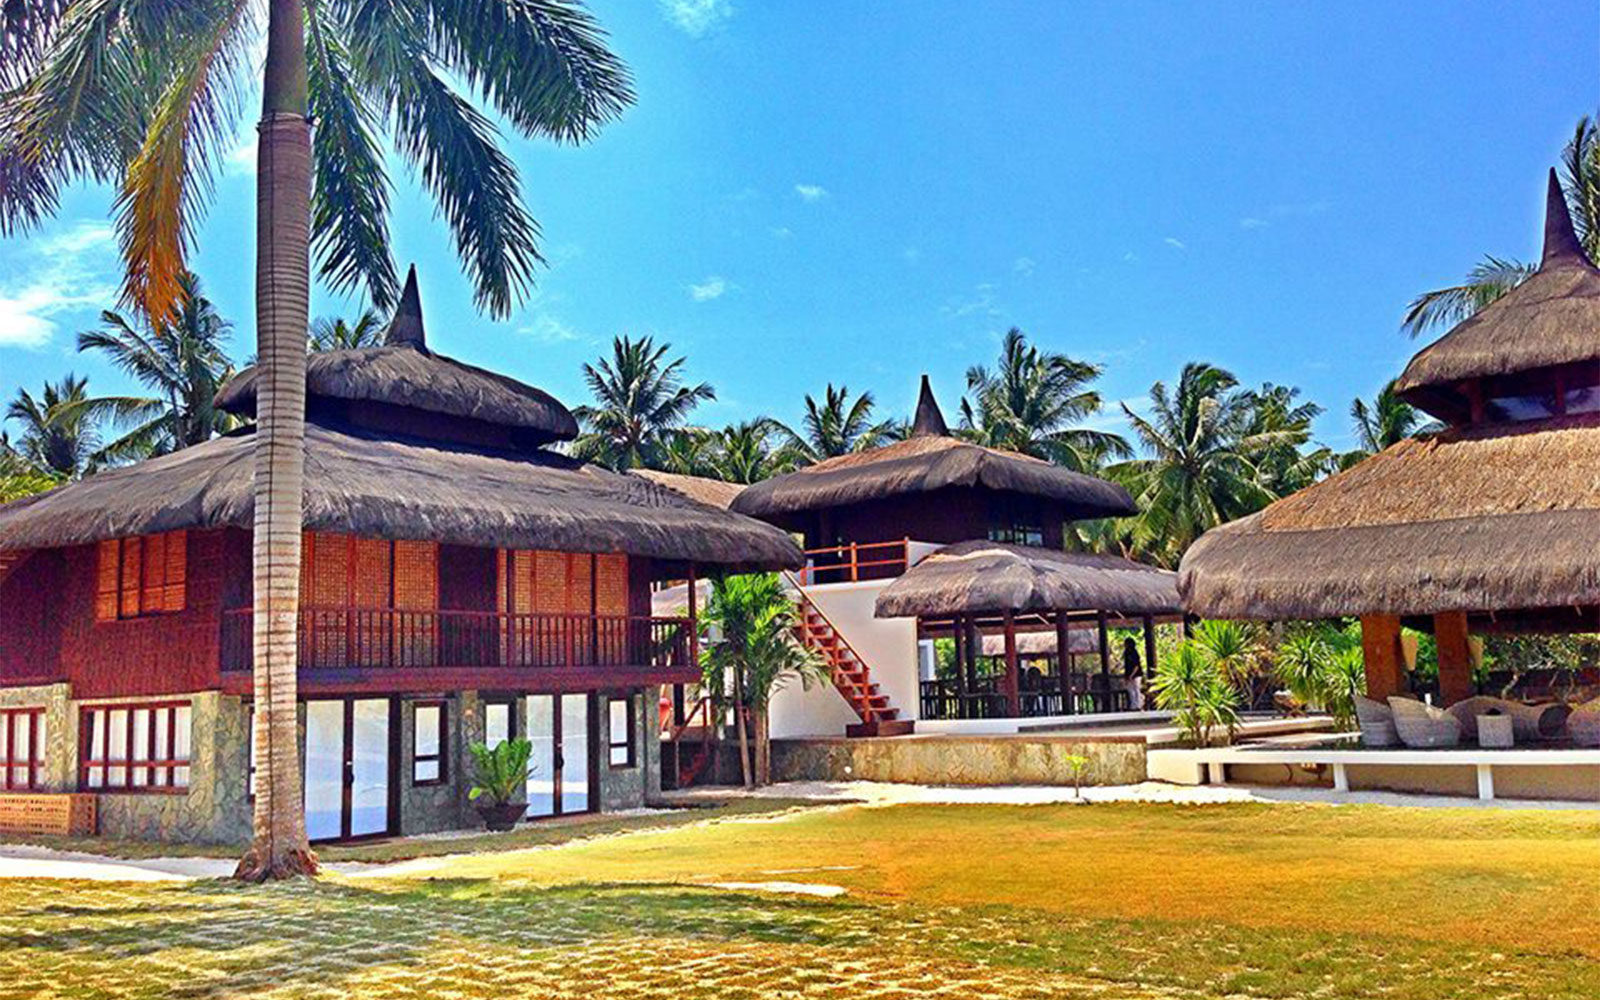 best affordable beach resorts: Ananyana Beach Resort & Spa